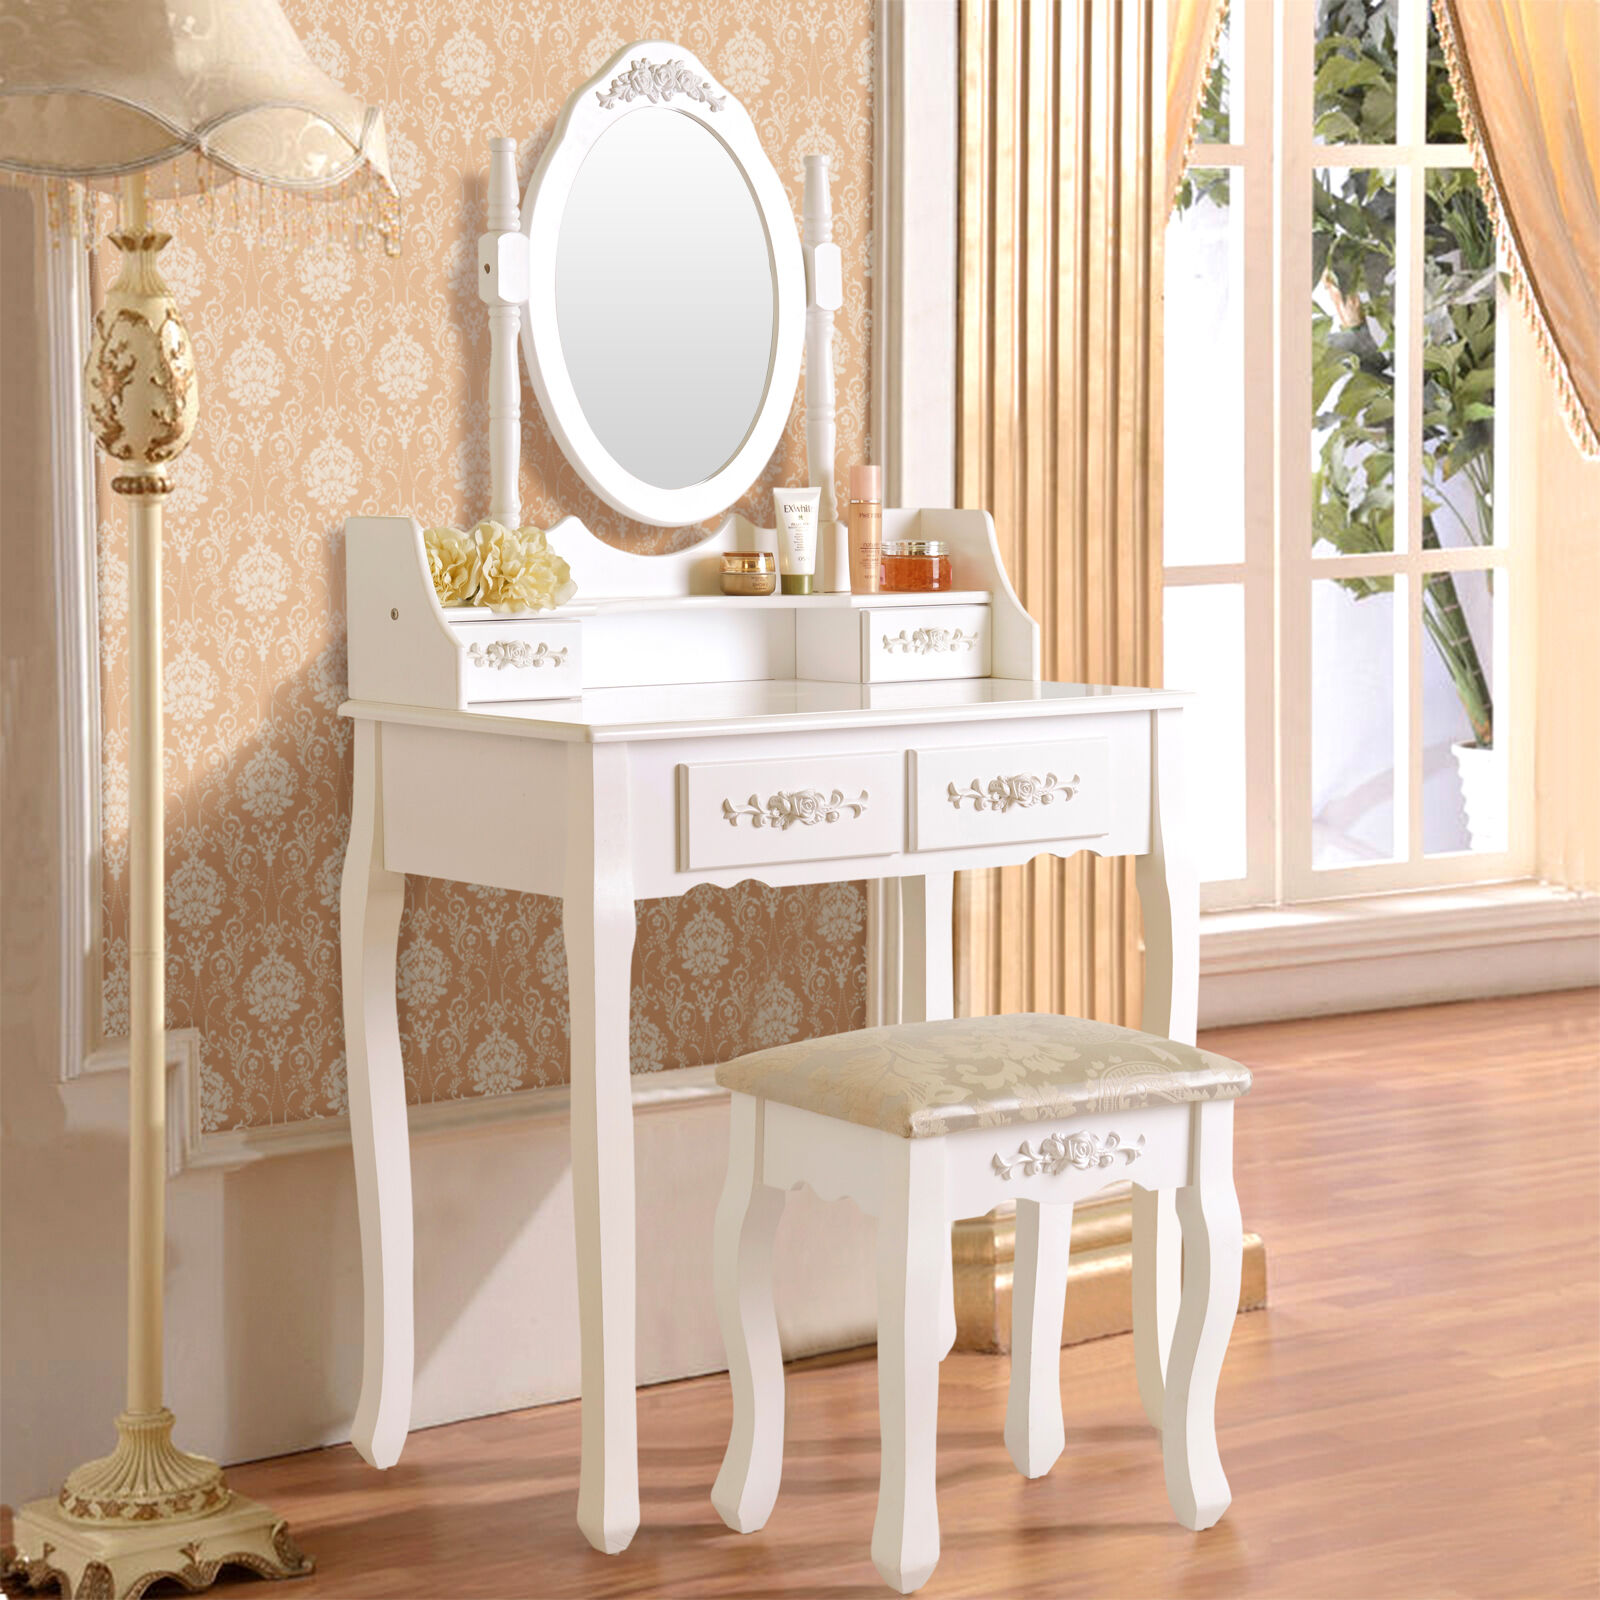 White Vanity Makeup Dressing Table Set with Stool 4 Drawer